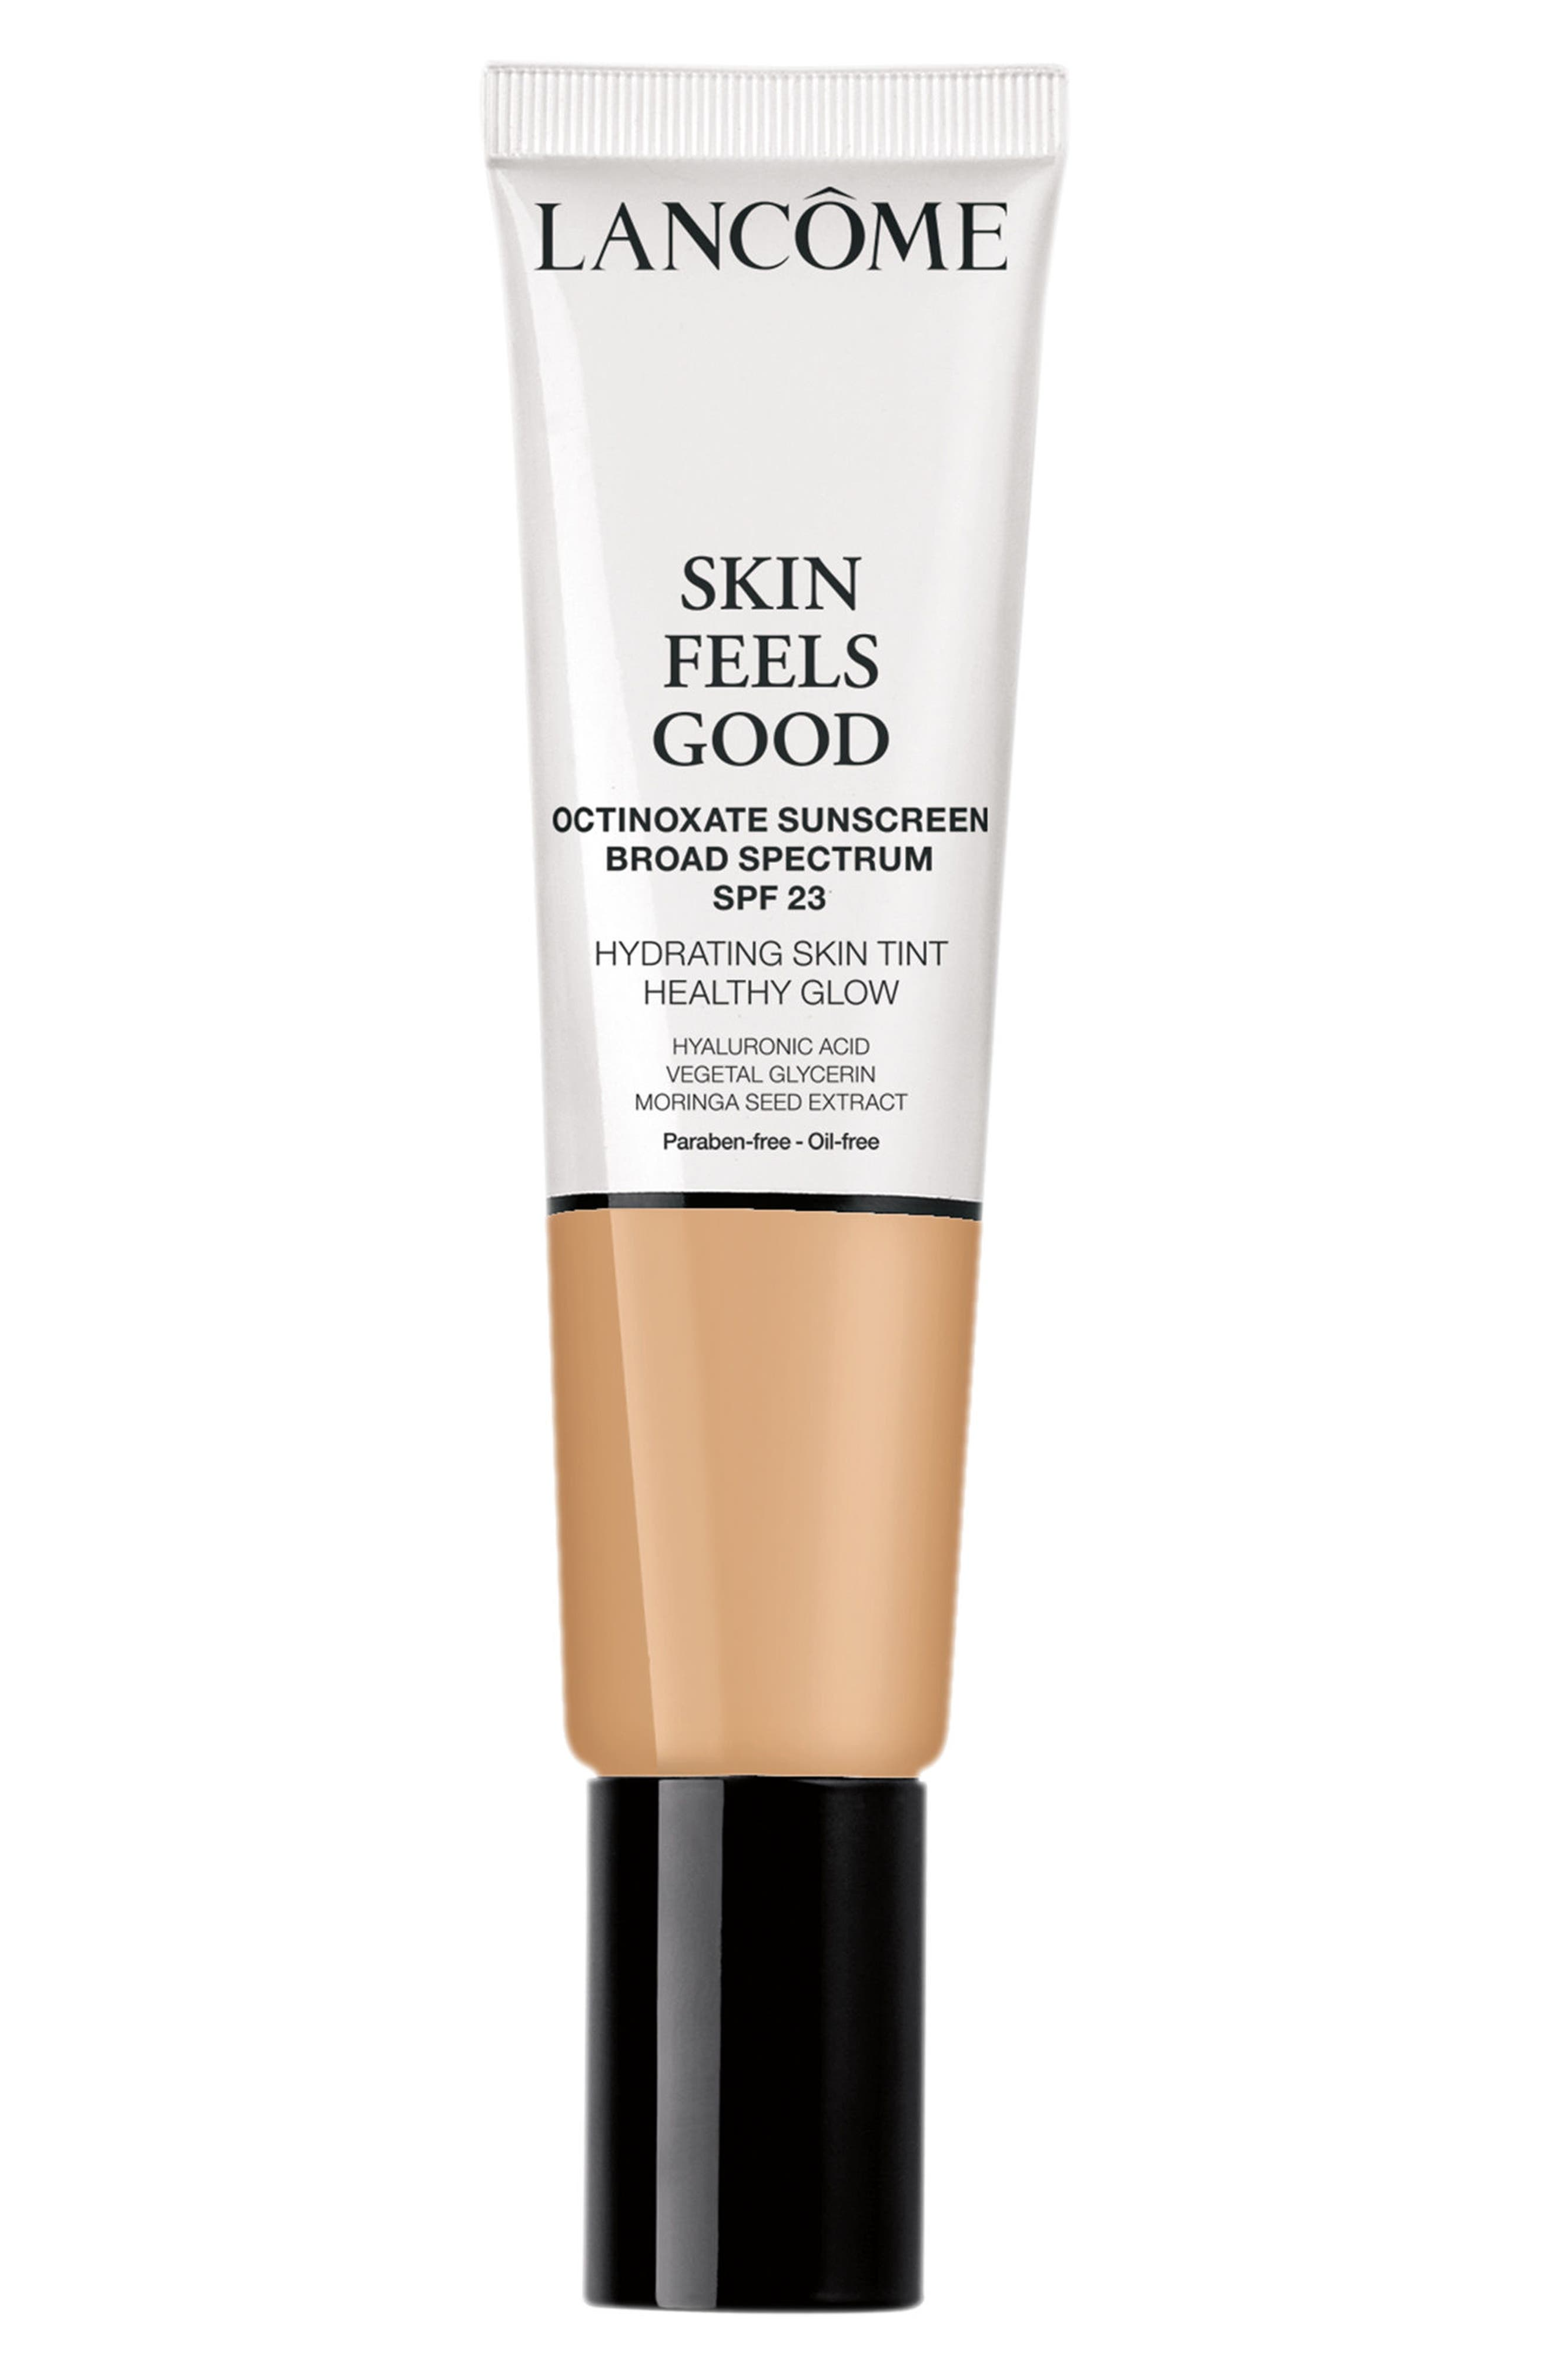 Skin Feels Good Hydrating Skin Tint Healthy Glow SPF 23,                             Main thumbnail 1, color,                             035W Fresh Almond